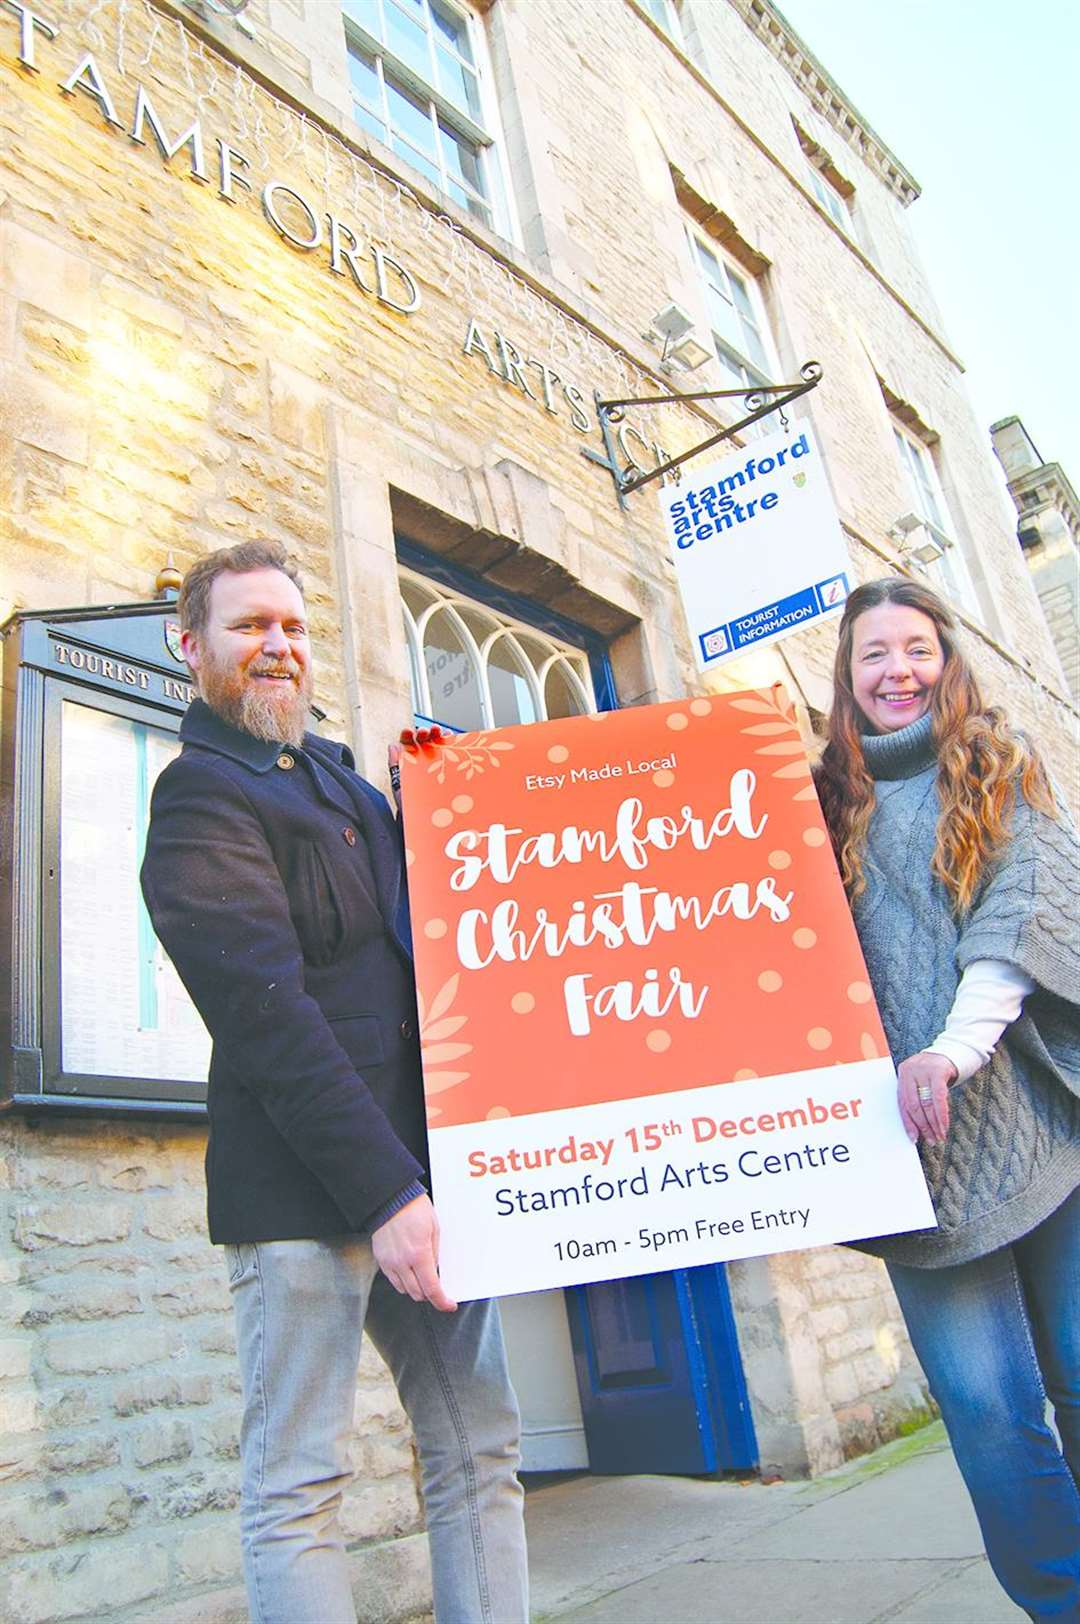 Jack Thorpe and Rachel Parkin promote the first Etsy Made Local fair in Stamford